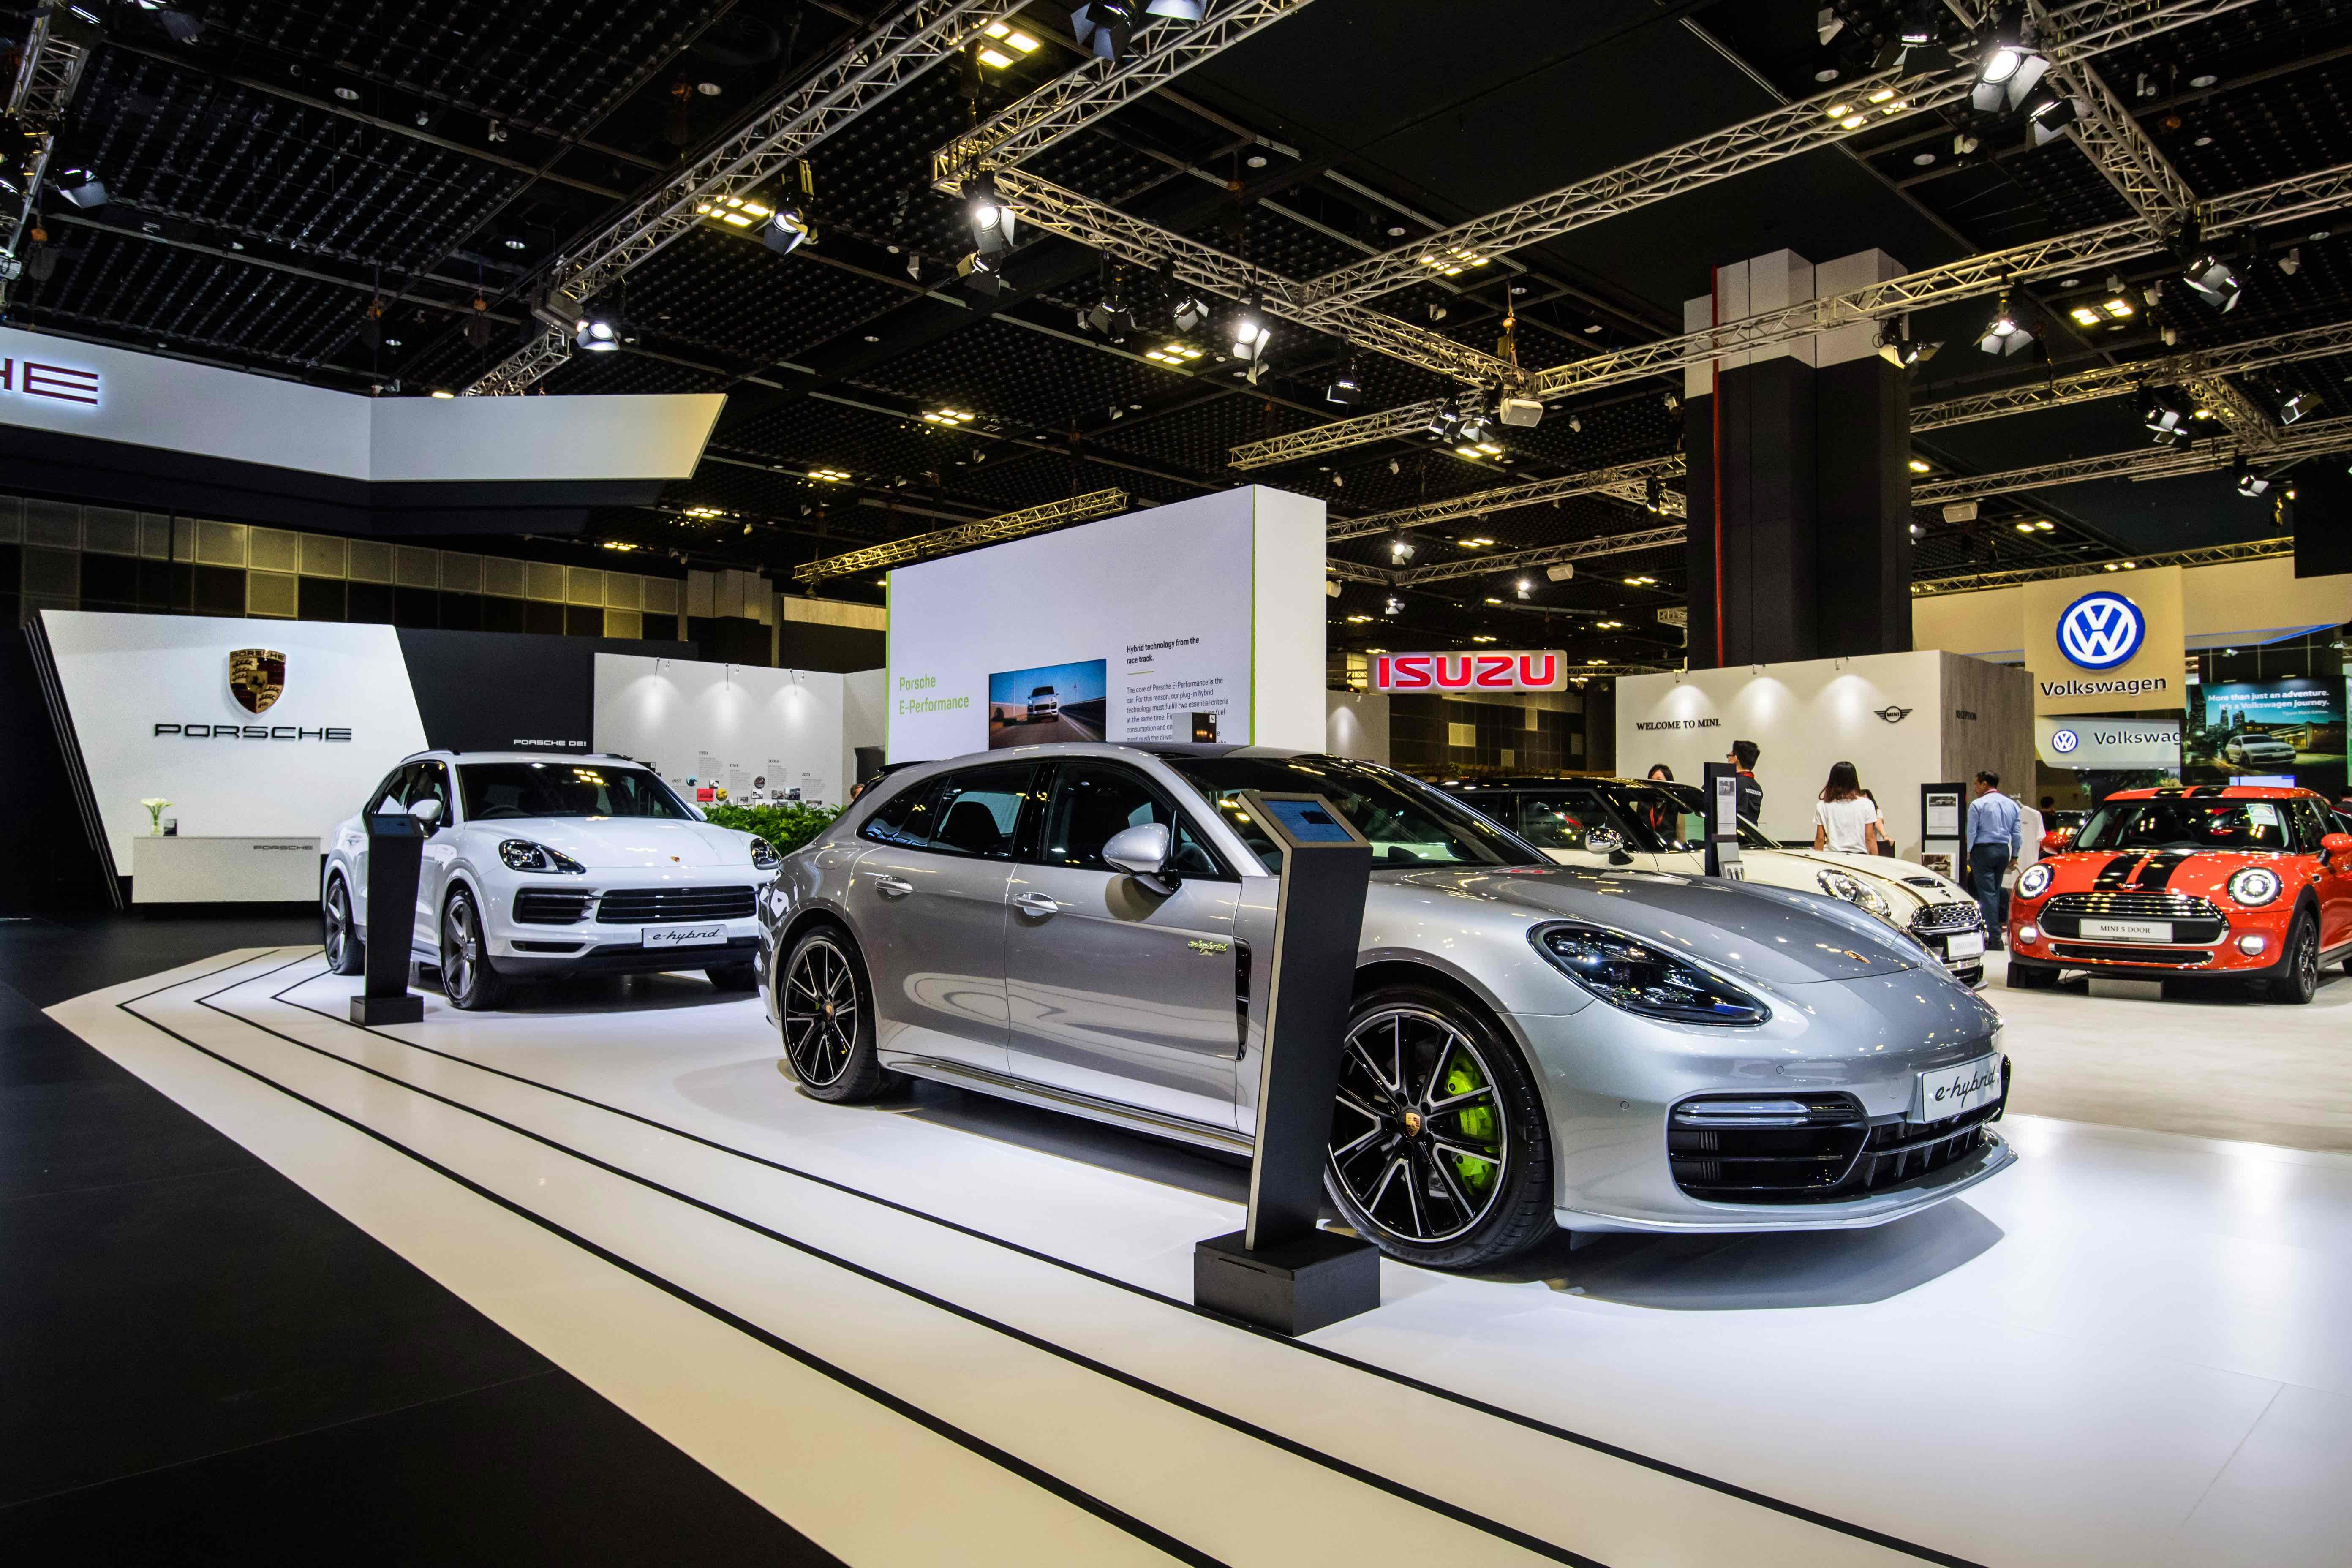 Porsche Cayenne E-Hybrid and Porsche Panamera E-Hybrid at the Singapore Motorshow 2019